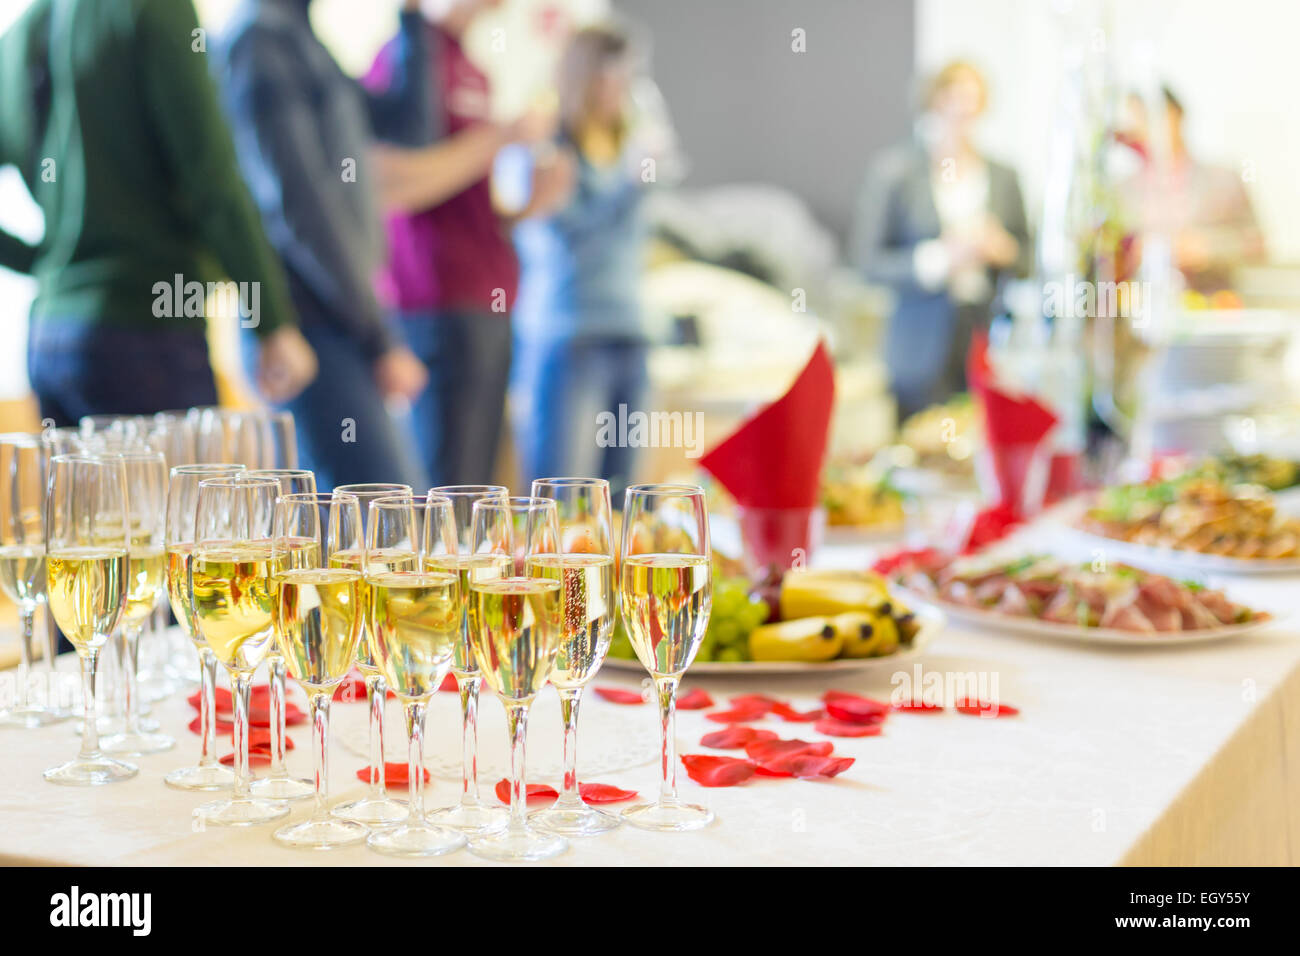 Banquet event. Champagne on table. - Stock Image